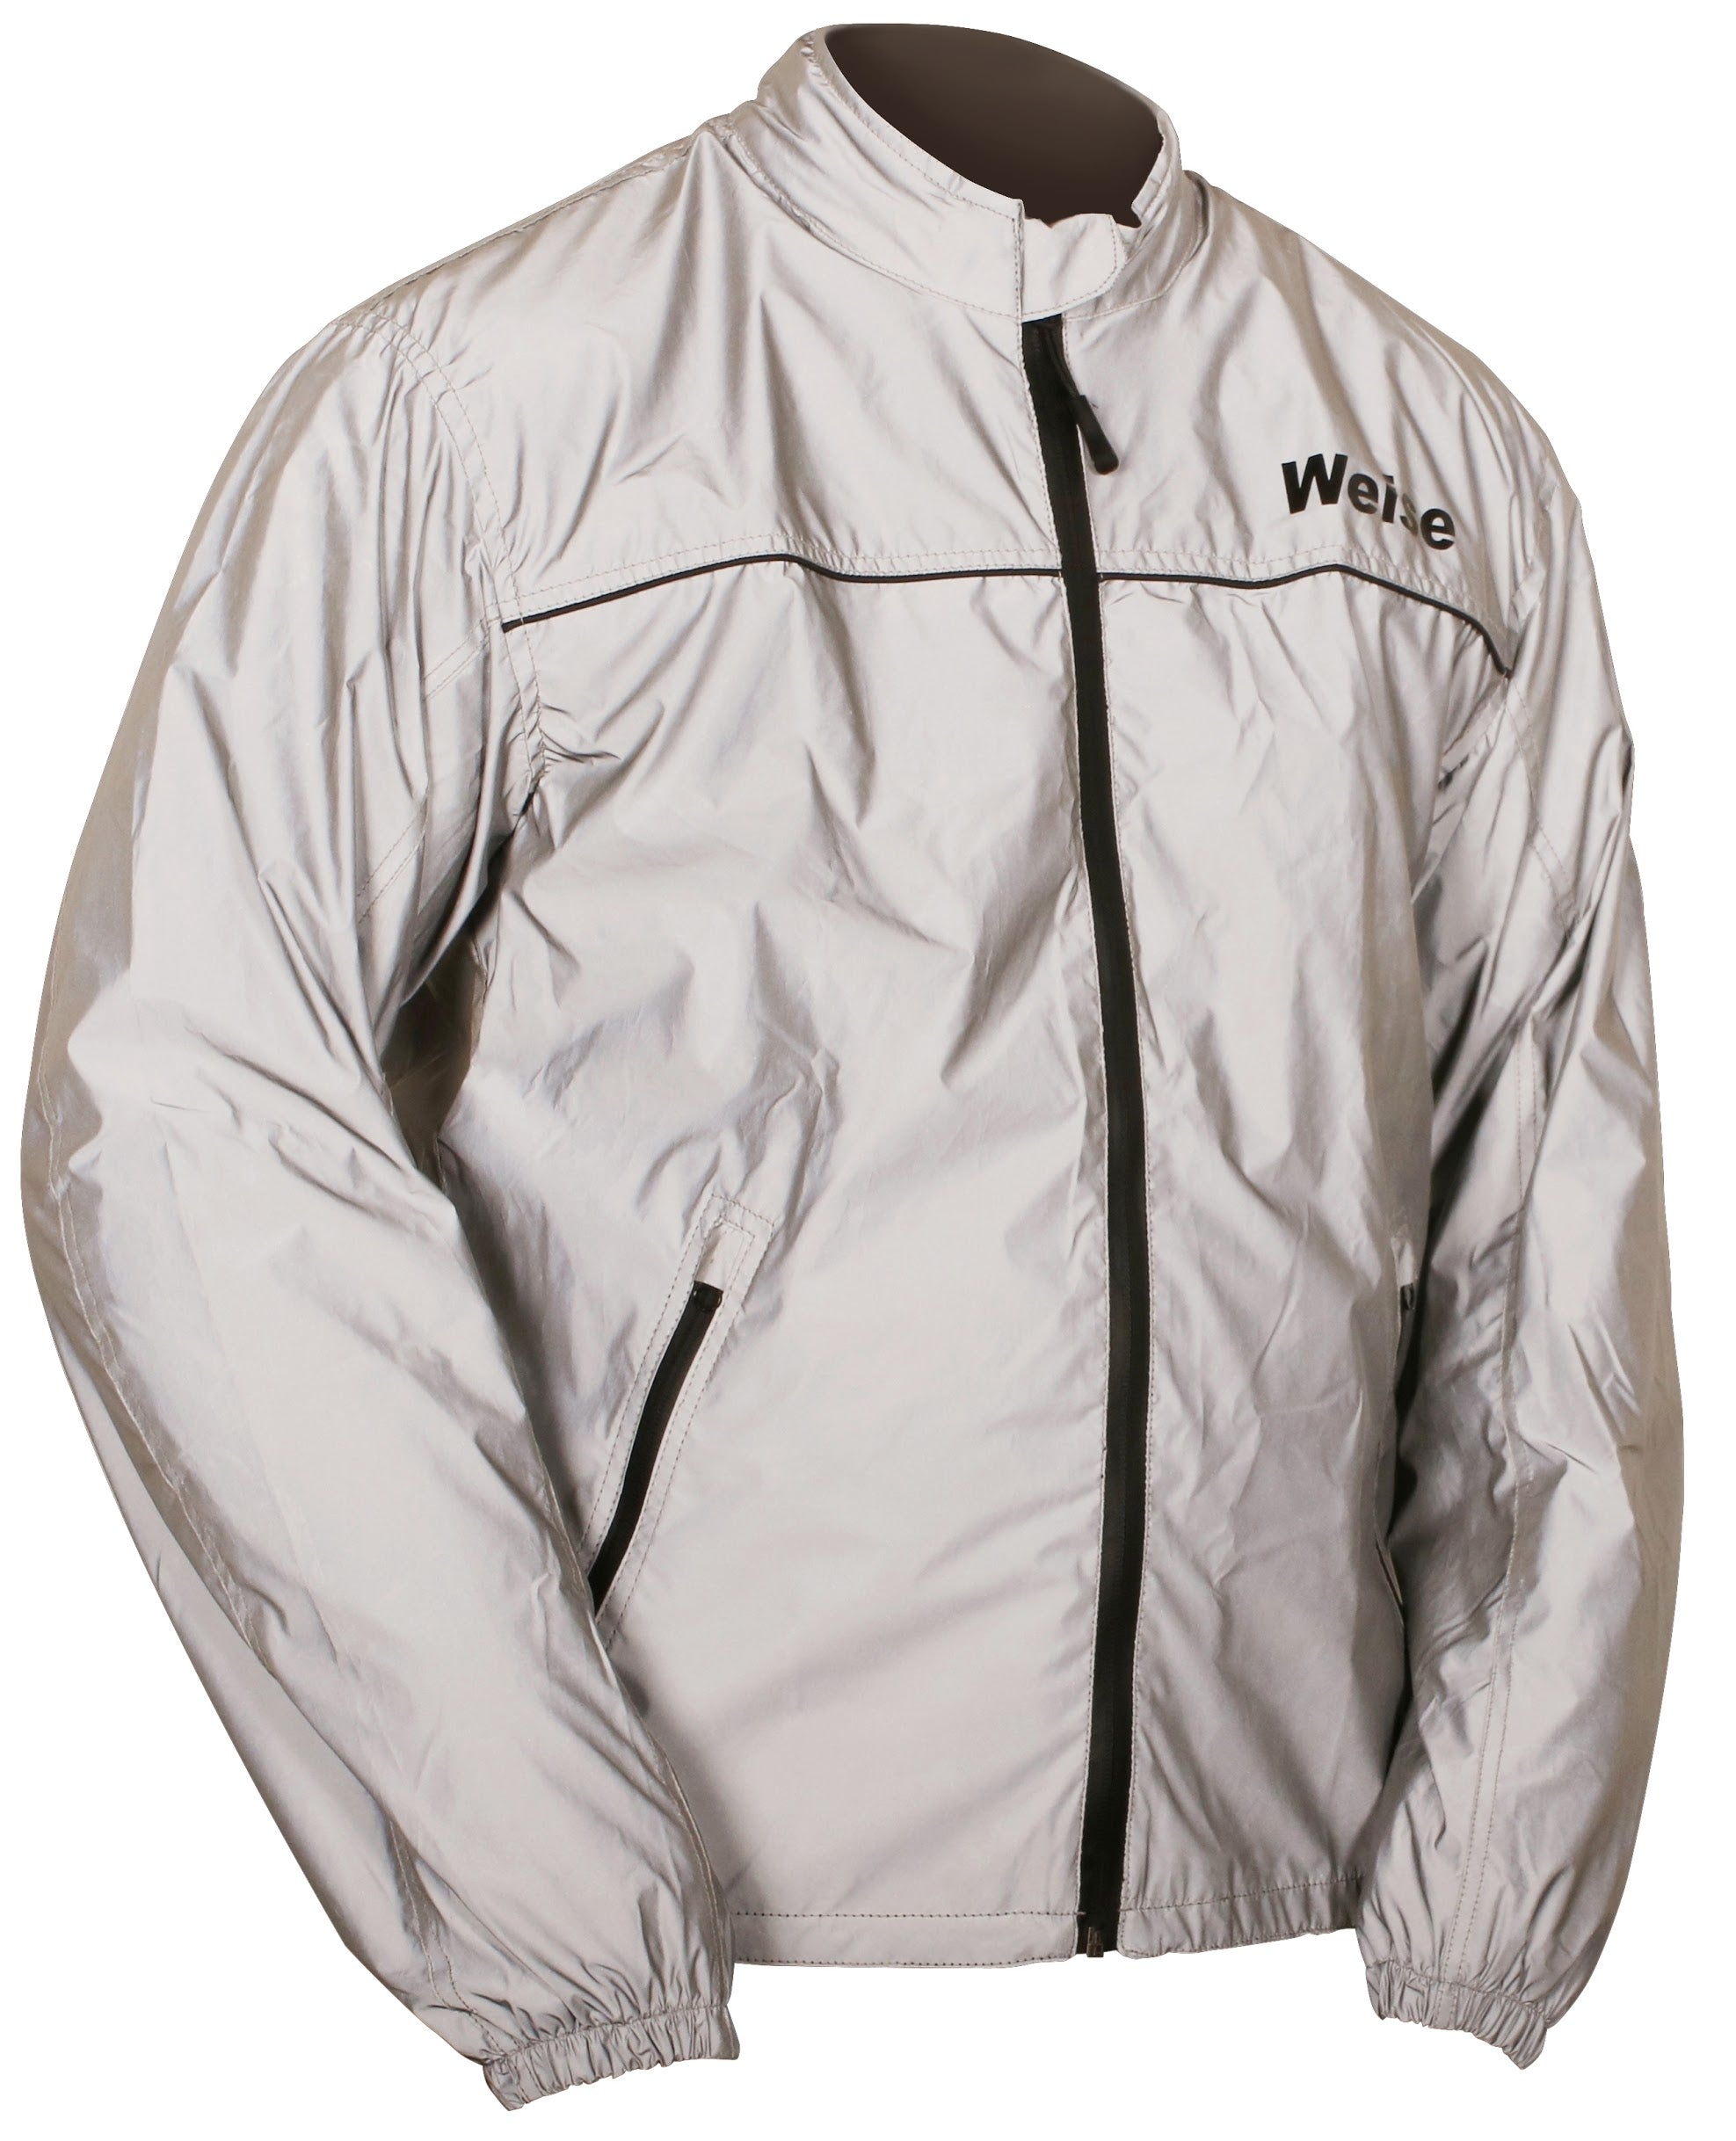 Weise Waterproofs - Vision Jacket